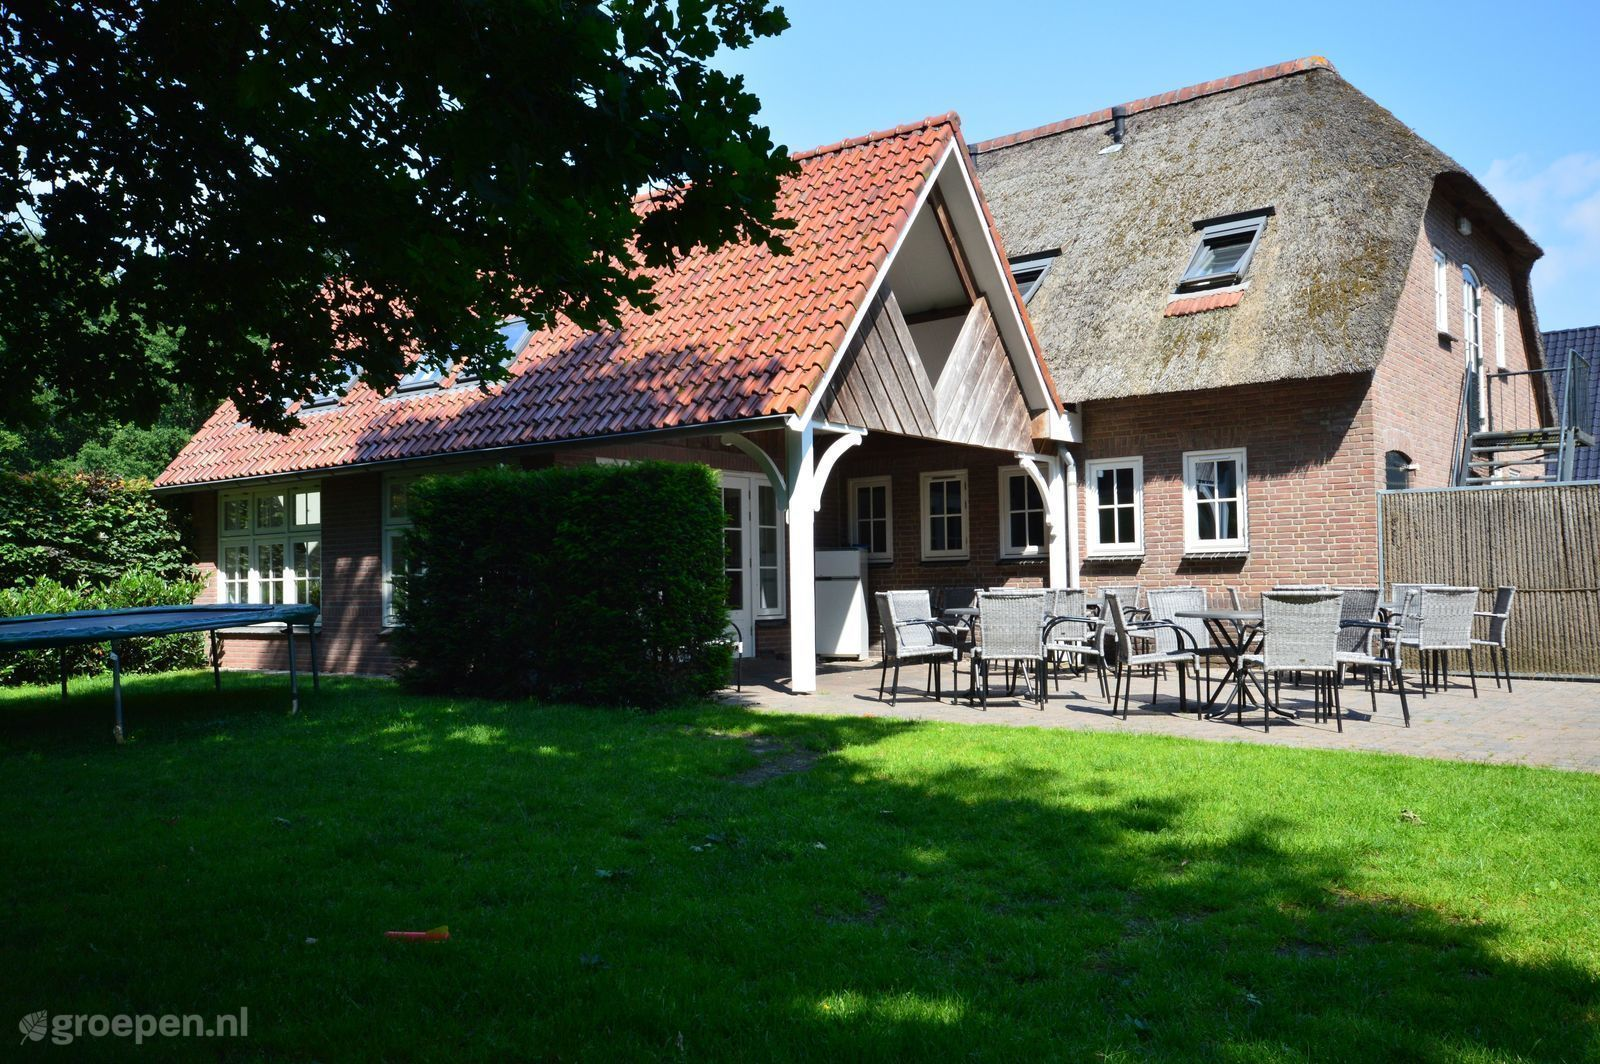 Van Ommen Kampen Accommodations In Ommen Groepen Co Uk